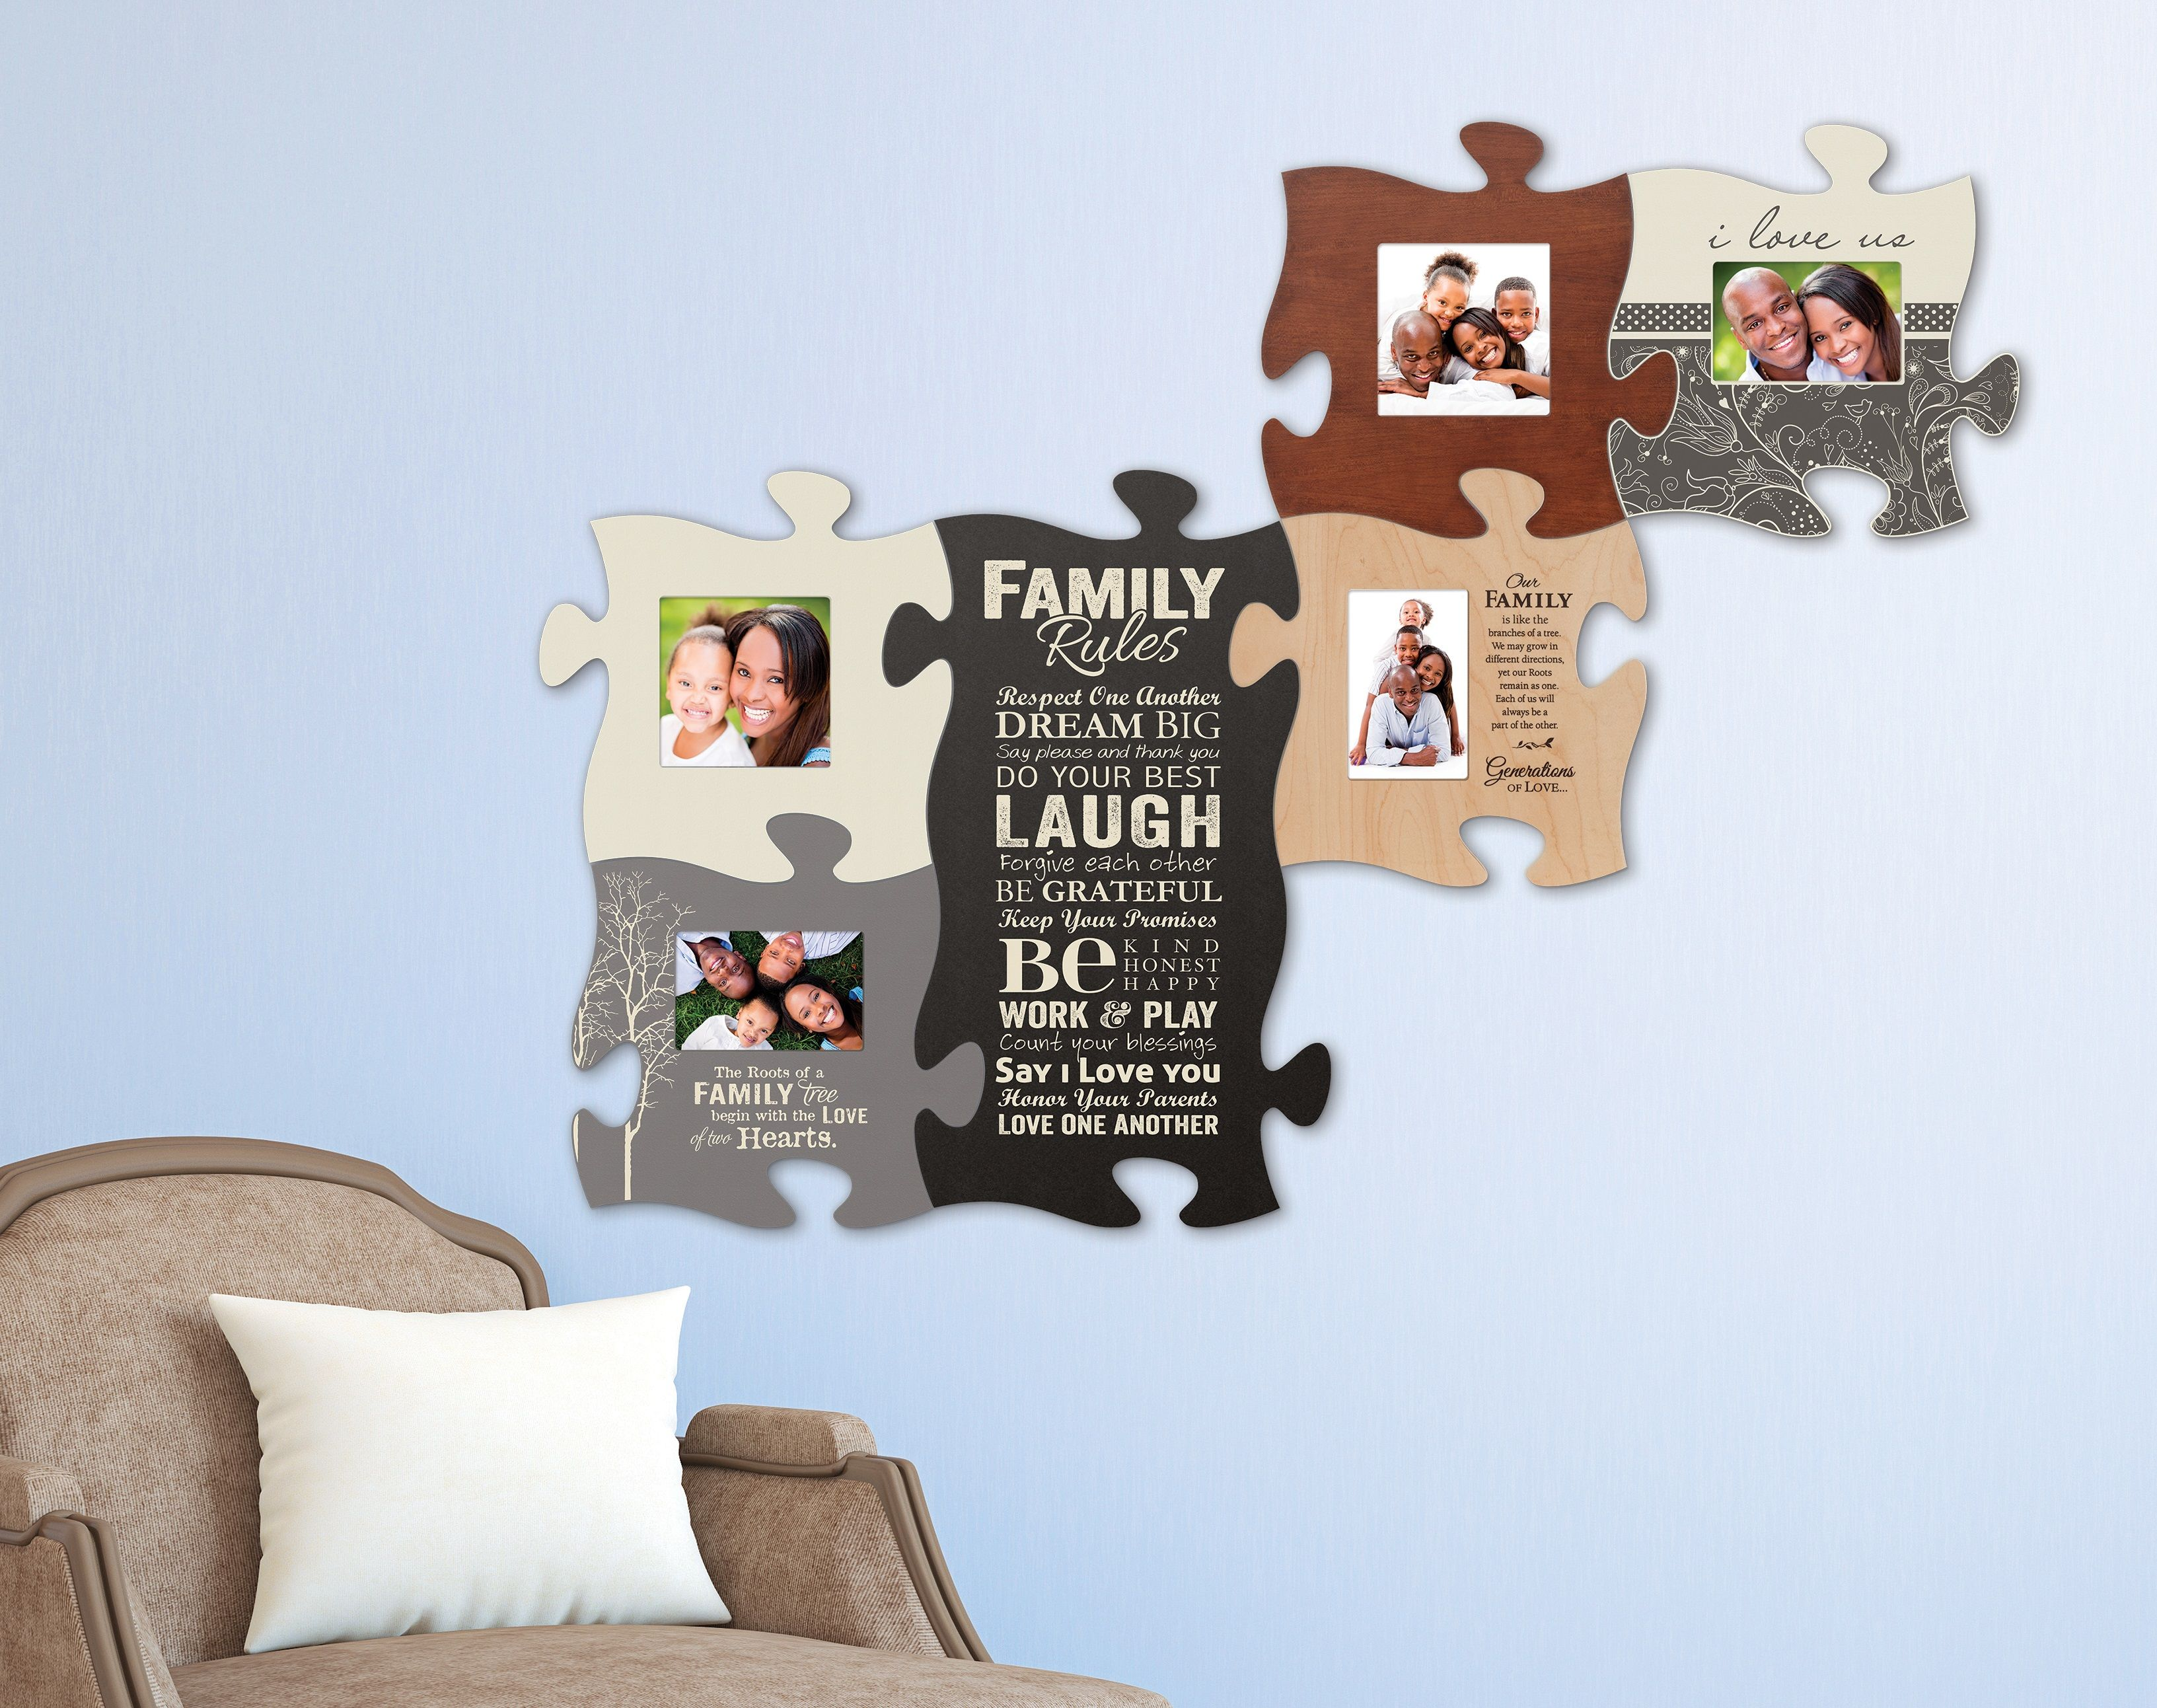 Puzzle Piece Your Family And Friends Together With This Wall Art There S Room For Everyone Plus Integrate Inspi Puzzle Pieces Puzzle Frame Inspiration Wall